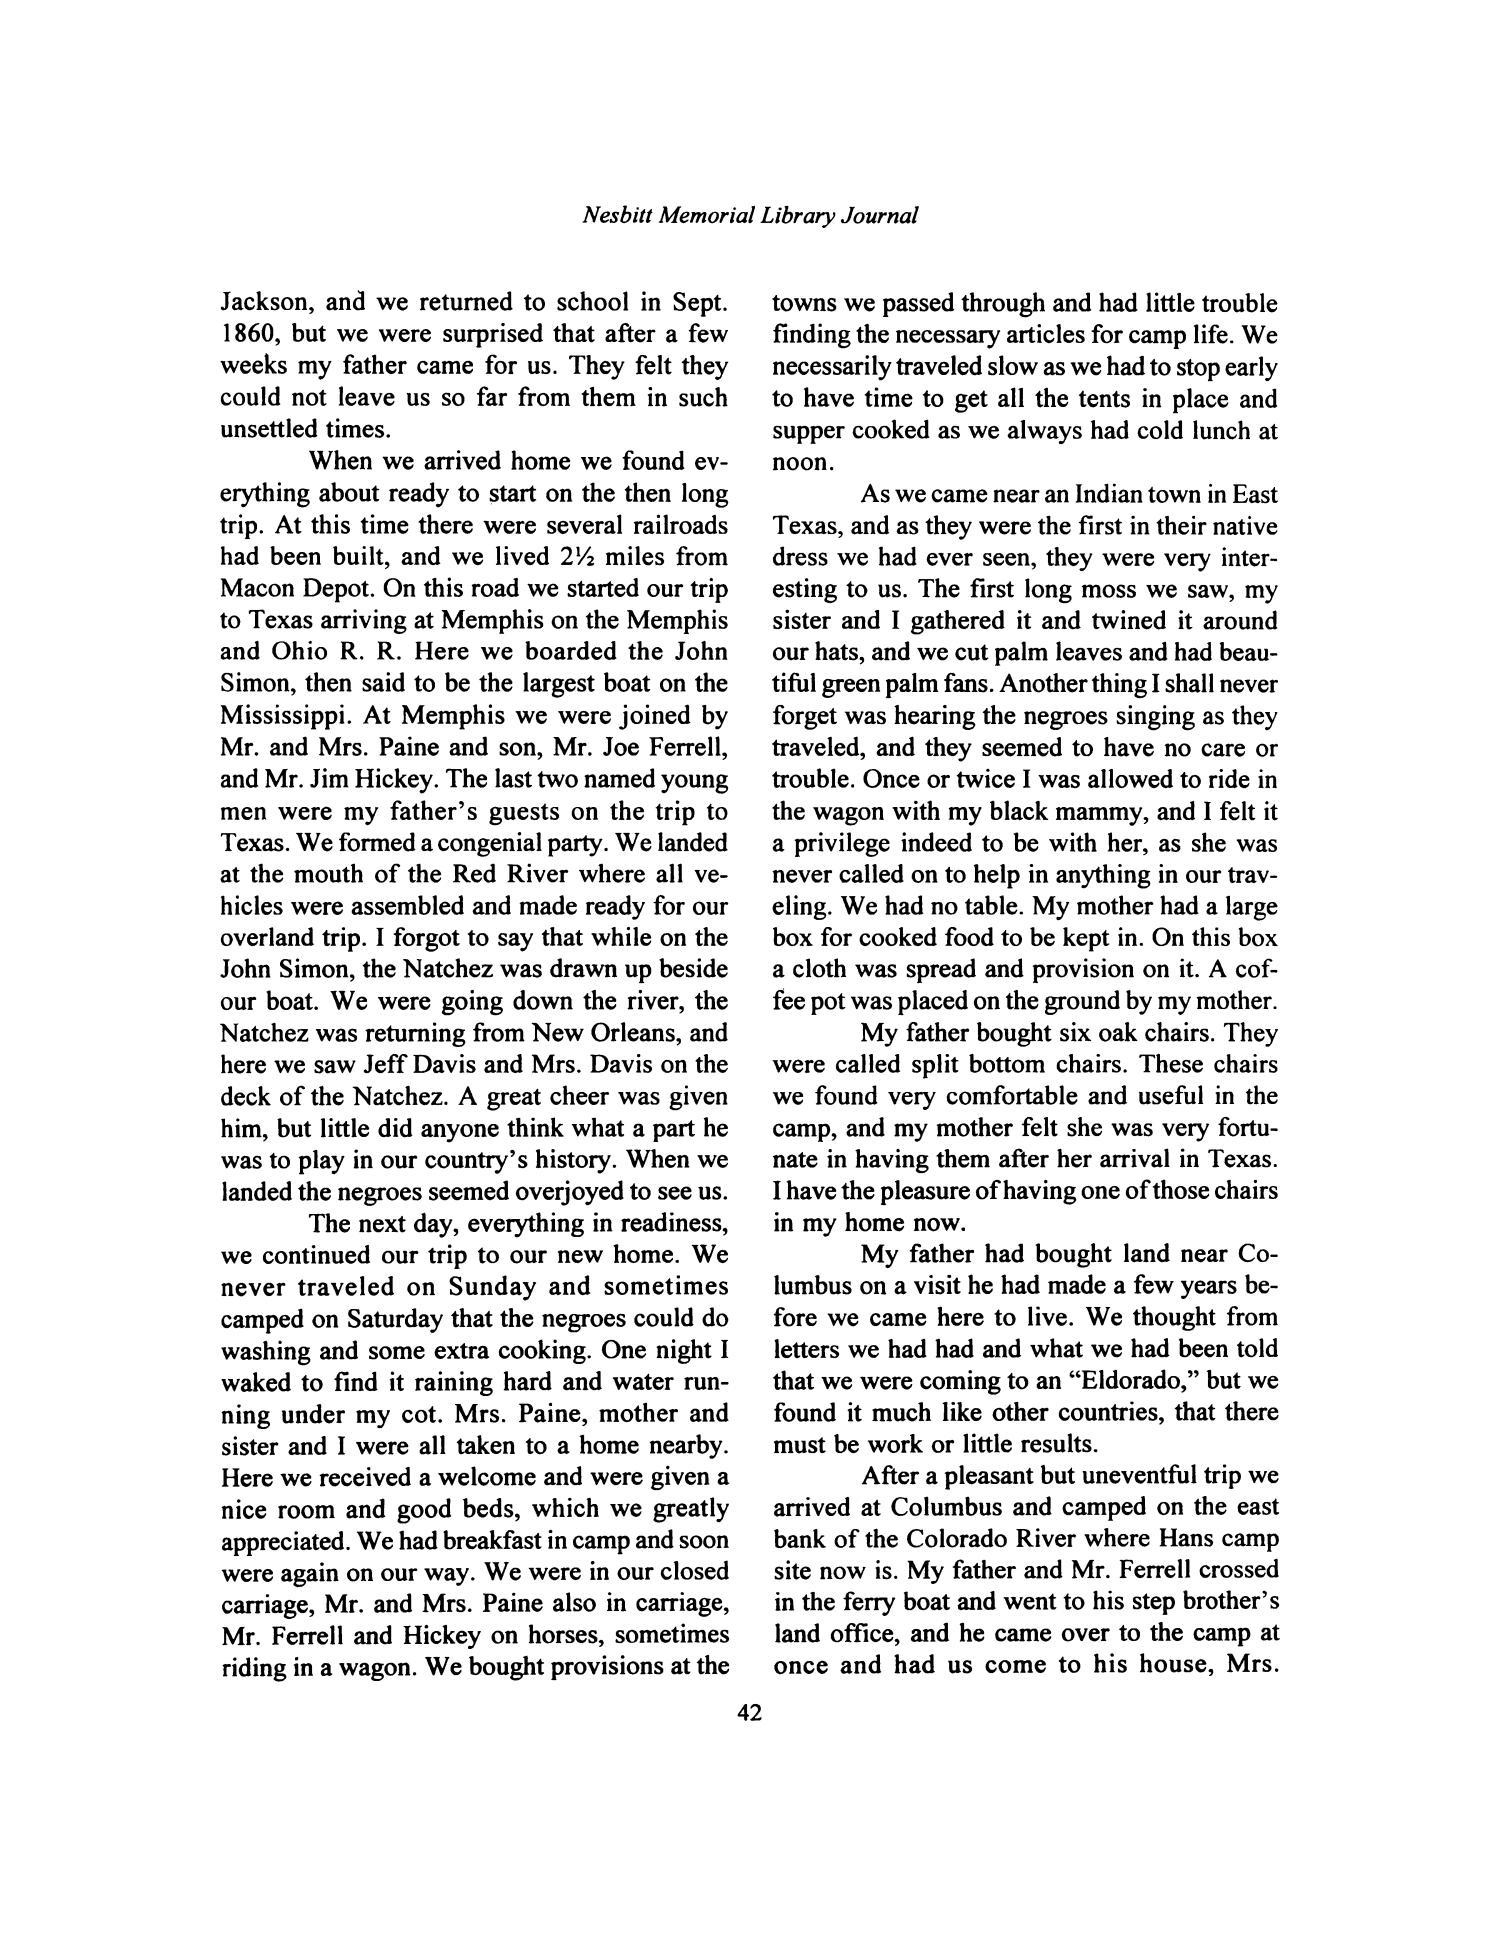 Nesbitt Memorial Library Journal, Volume 9, Number 1, January, 1999                                                                                                      42